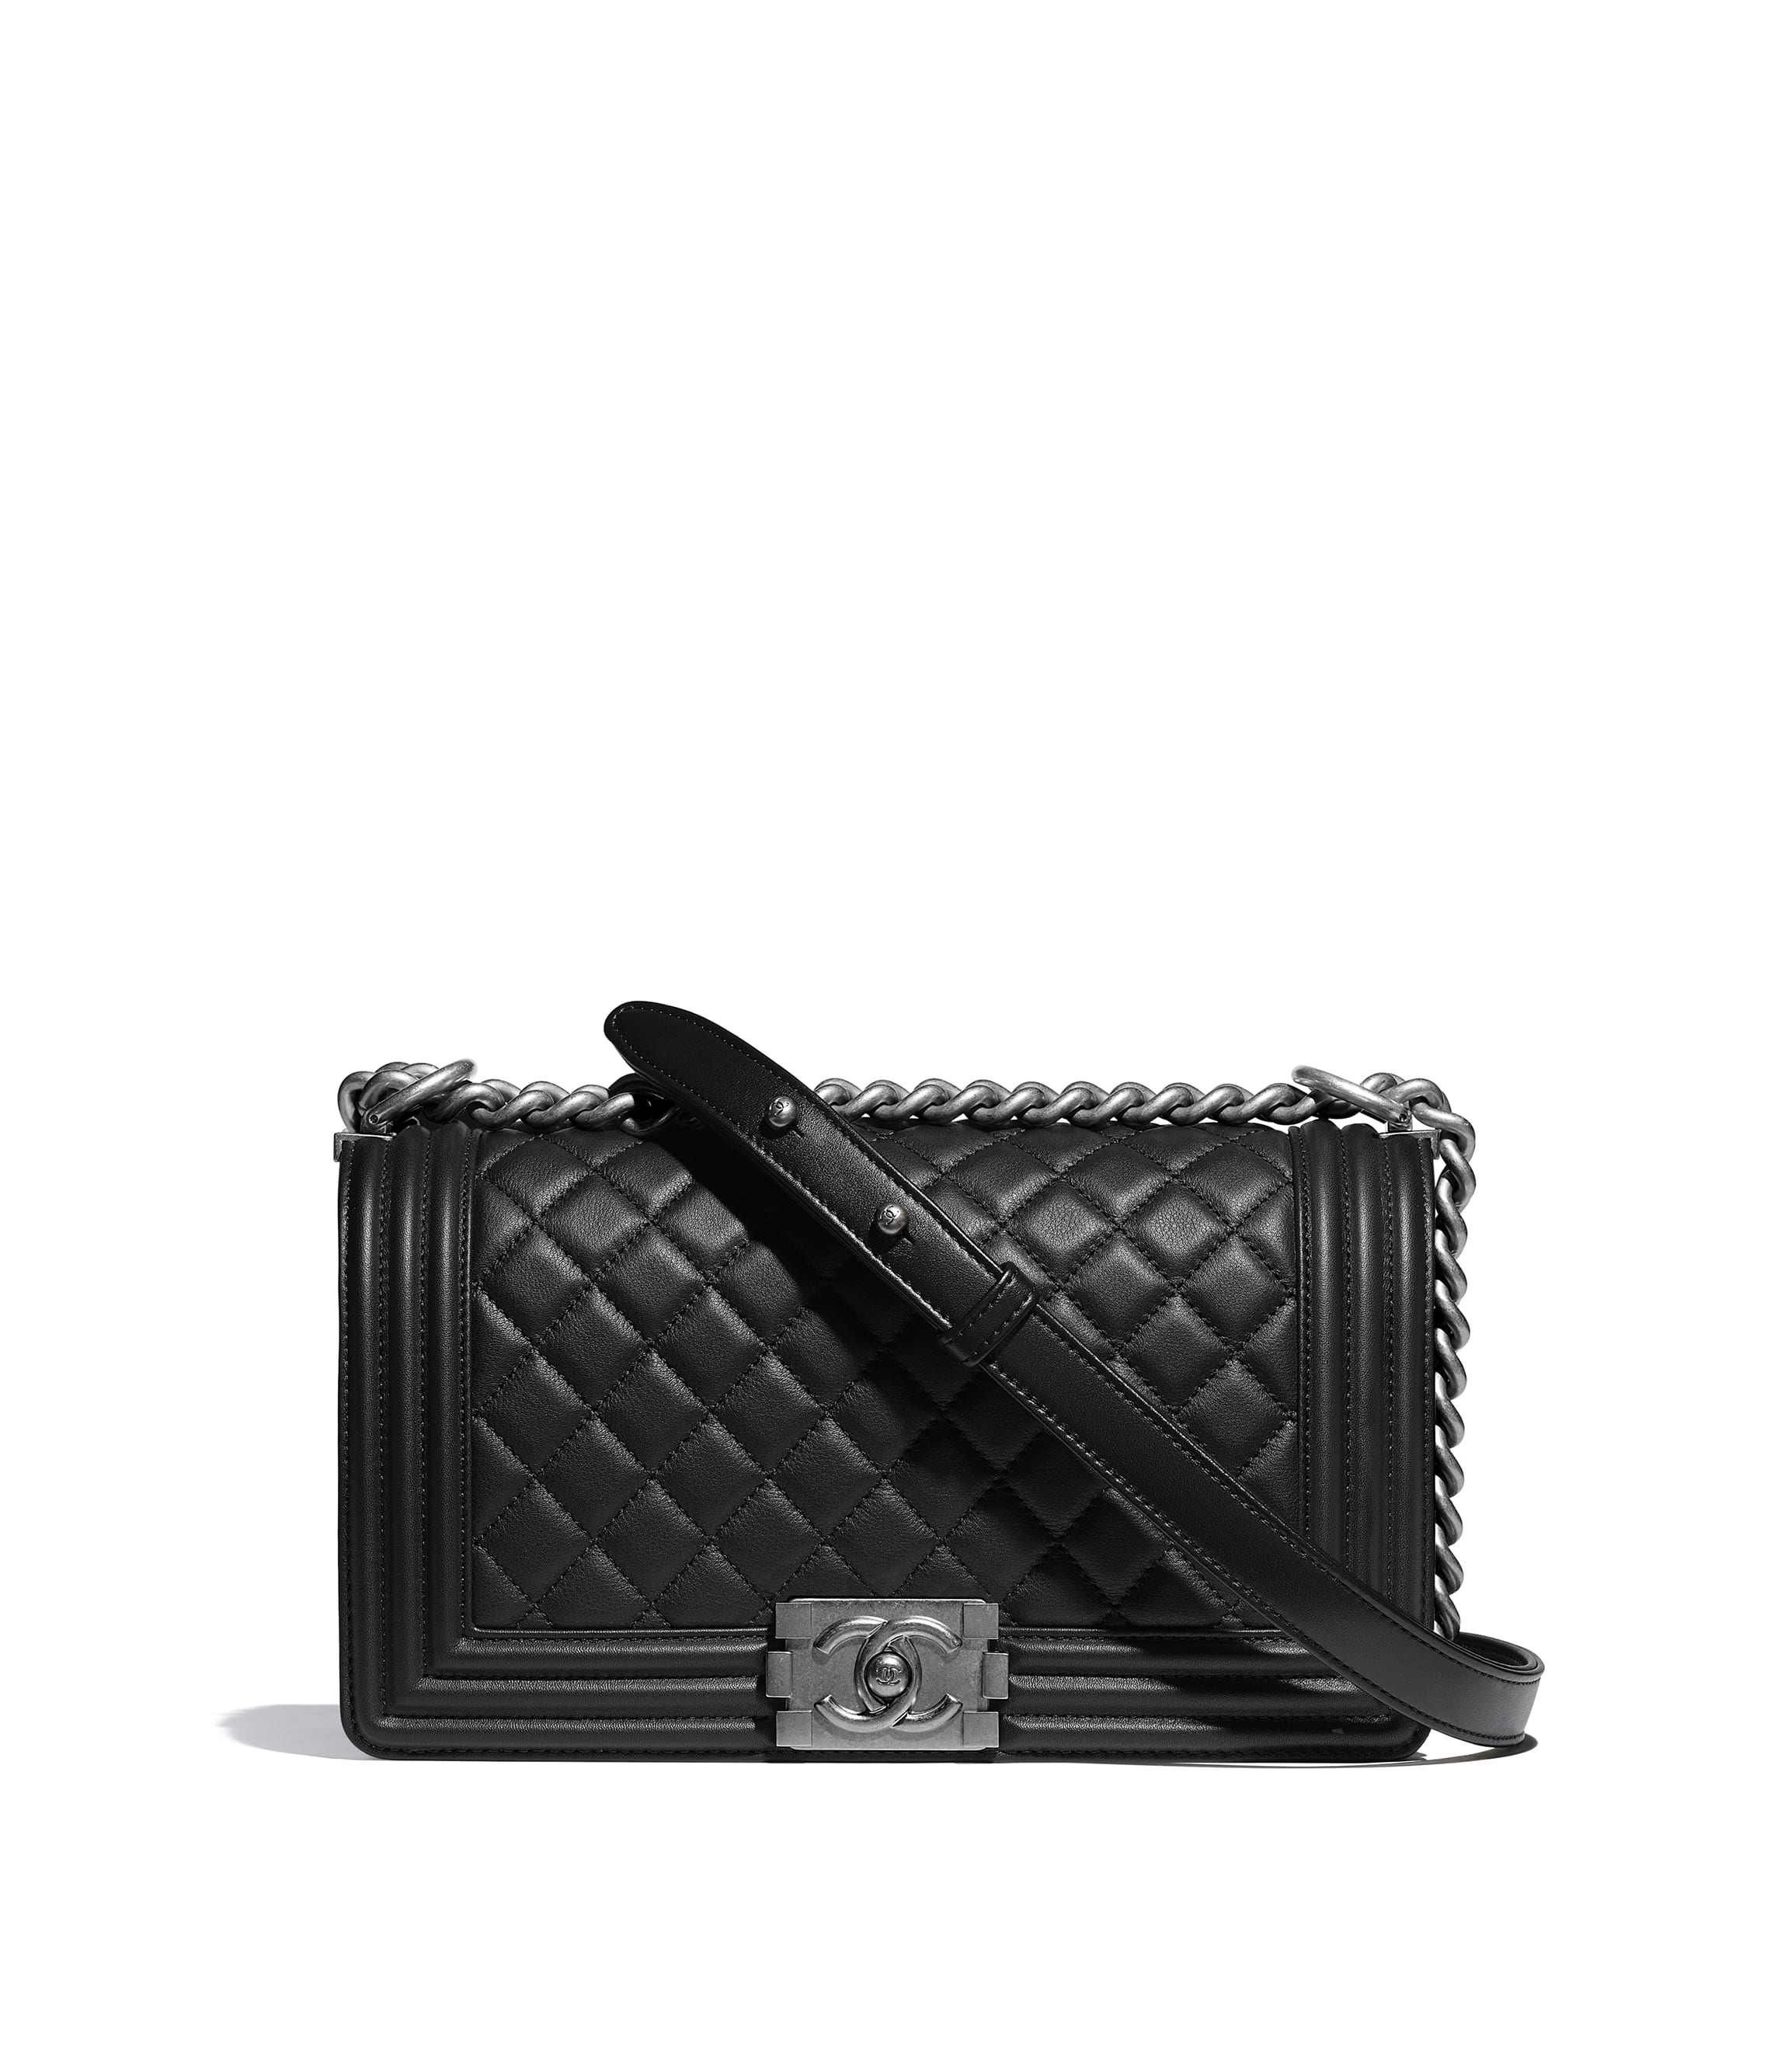 c1e80958b54c BOY CHANEL Handbag, calfskin & ruthenium-finish metal, black - CHANEL